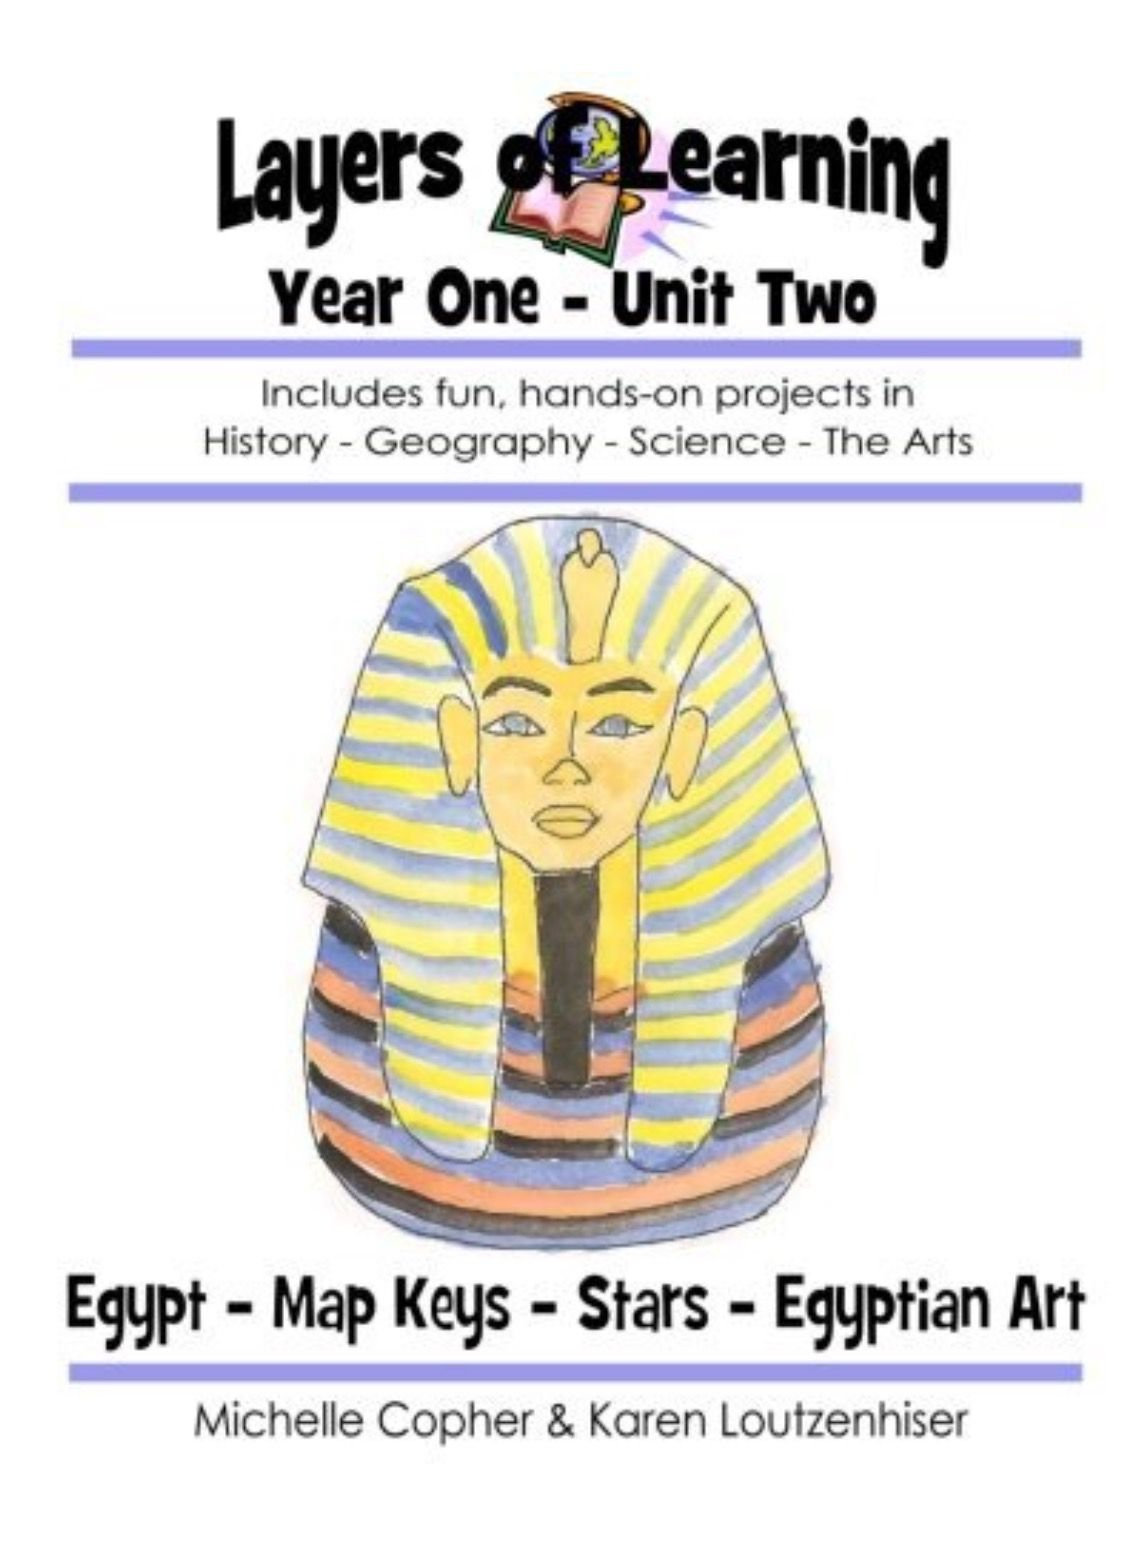 Pin By Dr J On Teaching My Son Kids Place Parts Of Speech Activities Teaching Kids To Write Egypt Map [ 1549 x 1125 Pixel ]